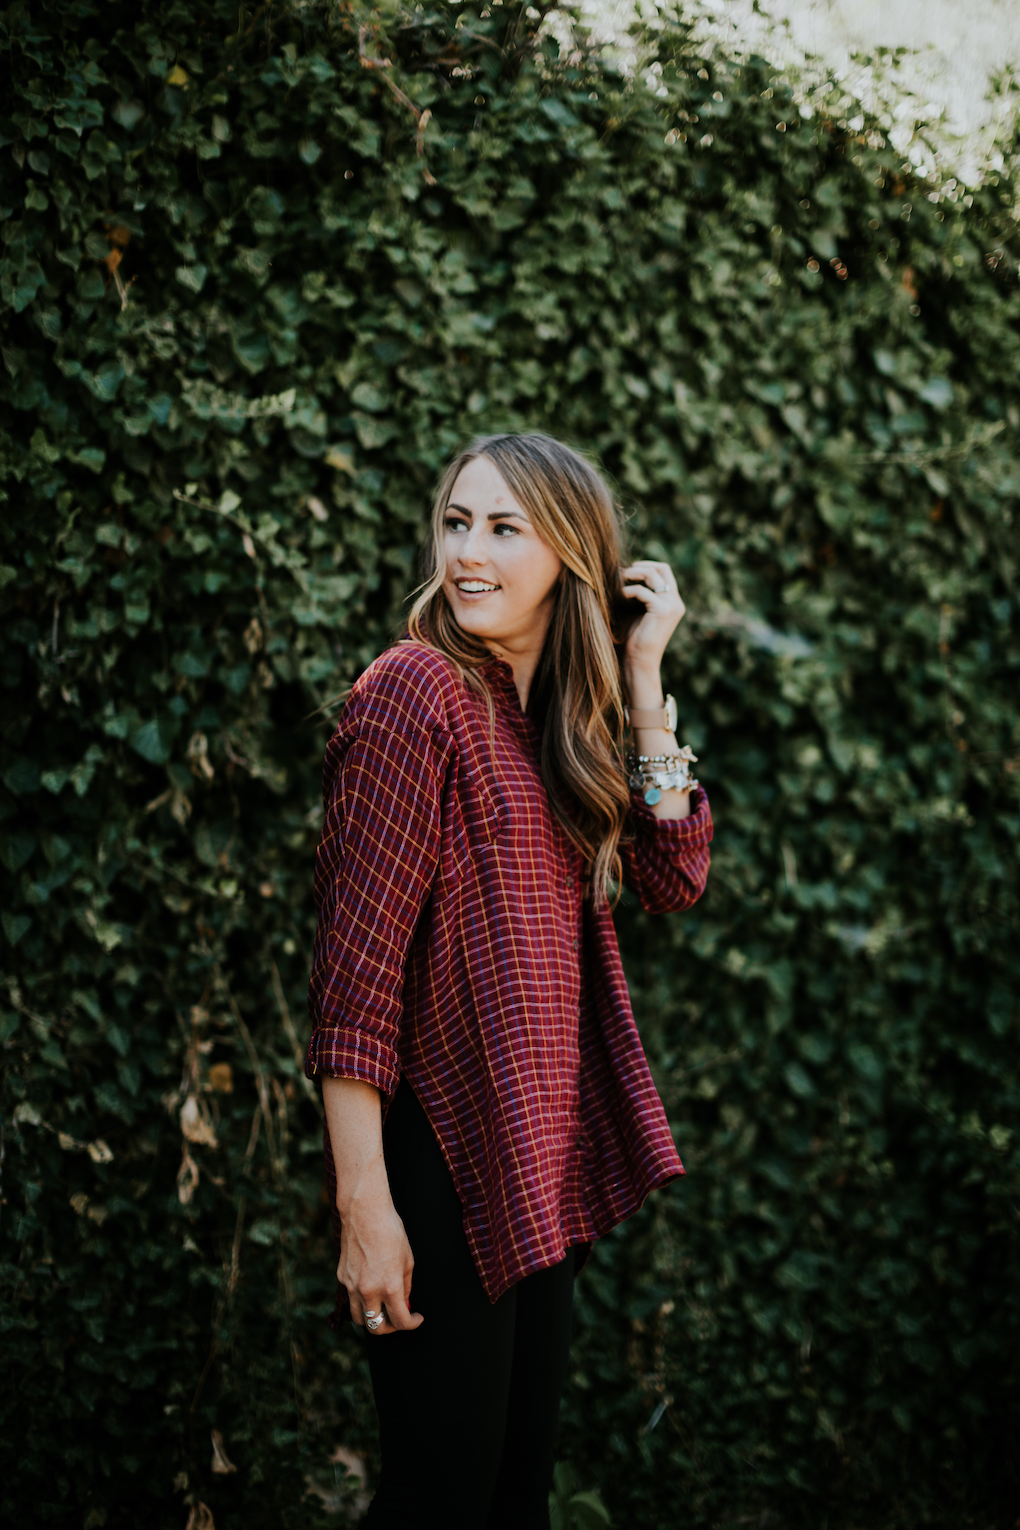 girl turned side ways laughing in red oversized flannel